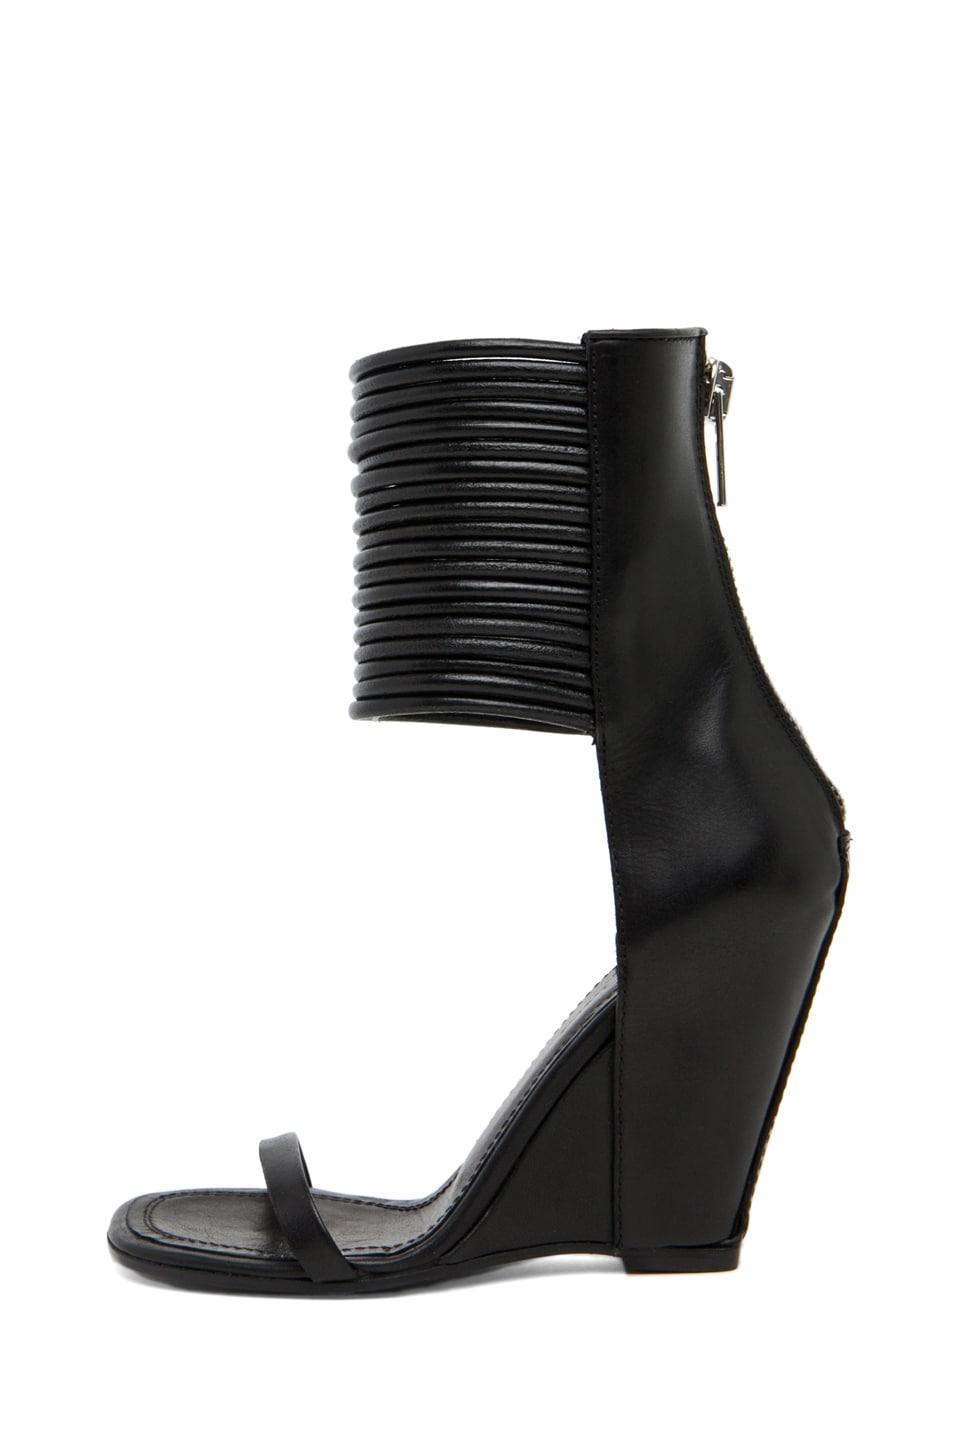 Image 1 of Rick Owens Cord Sandal in Black